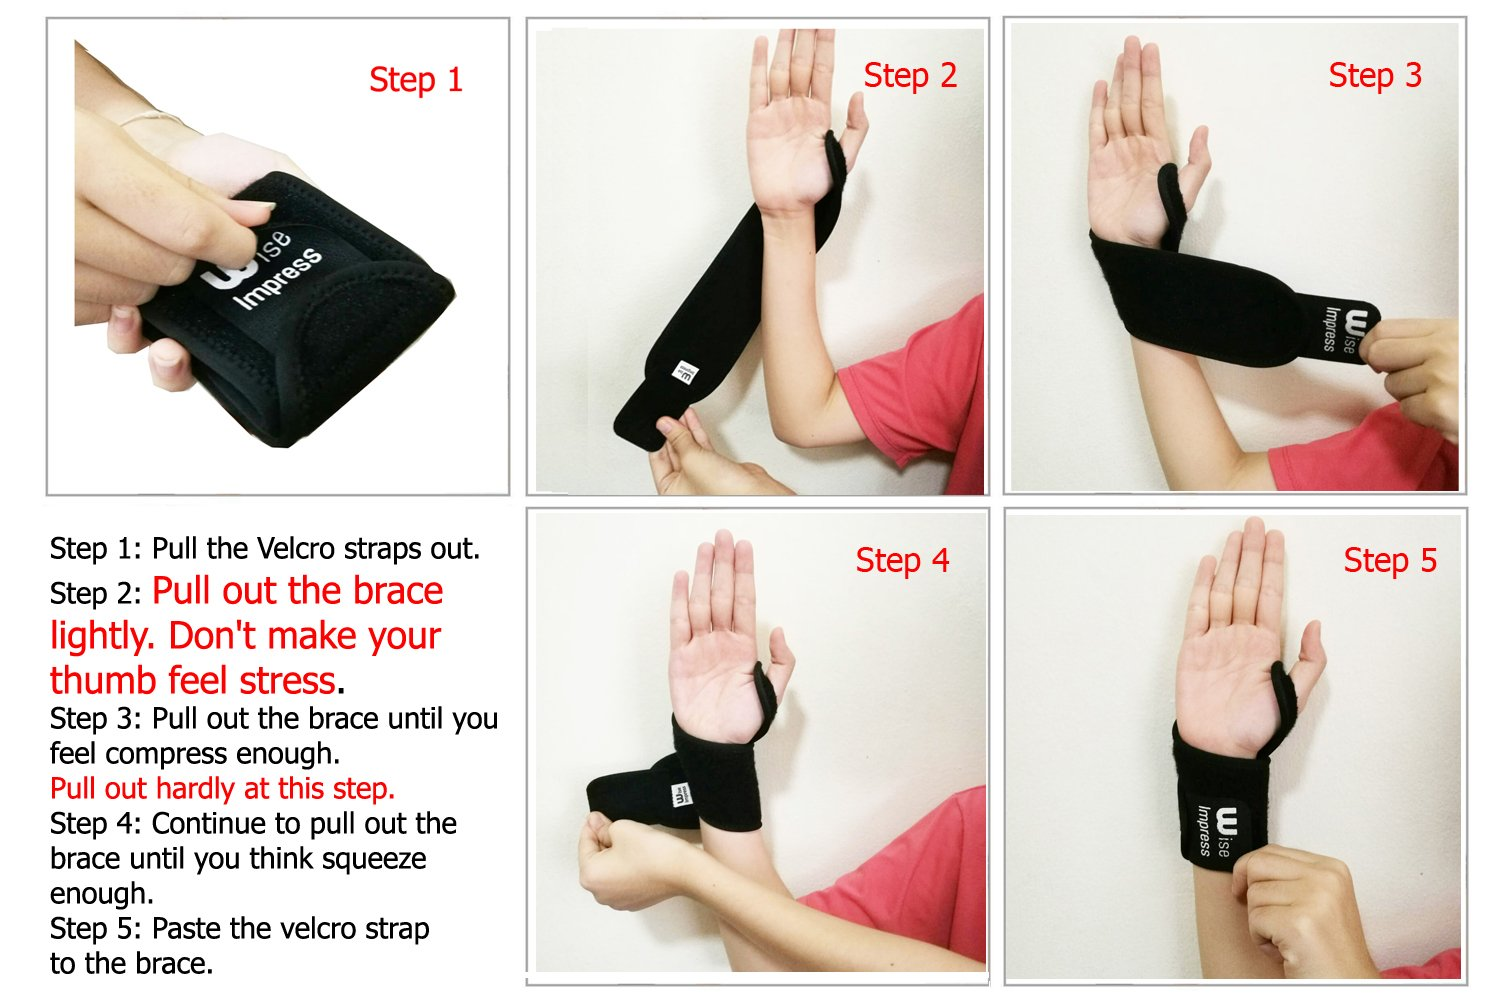 Wrist Wraps Brace Support For Carpal Tunnel Arthritis - Compression Braces Stabilizer - For Men Women Kids - Left And Right Hand - One Hand Adjustable - Best For Weight Lifting Bowling Workout (Black) by Wise Impress (Image #5)